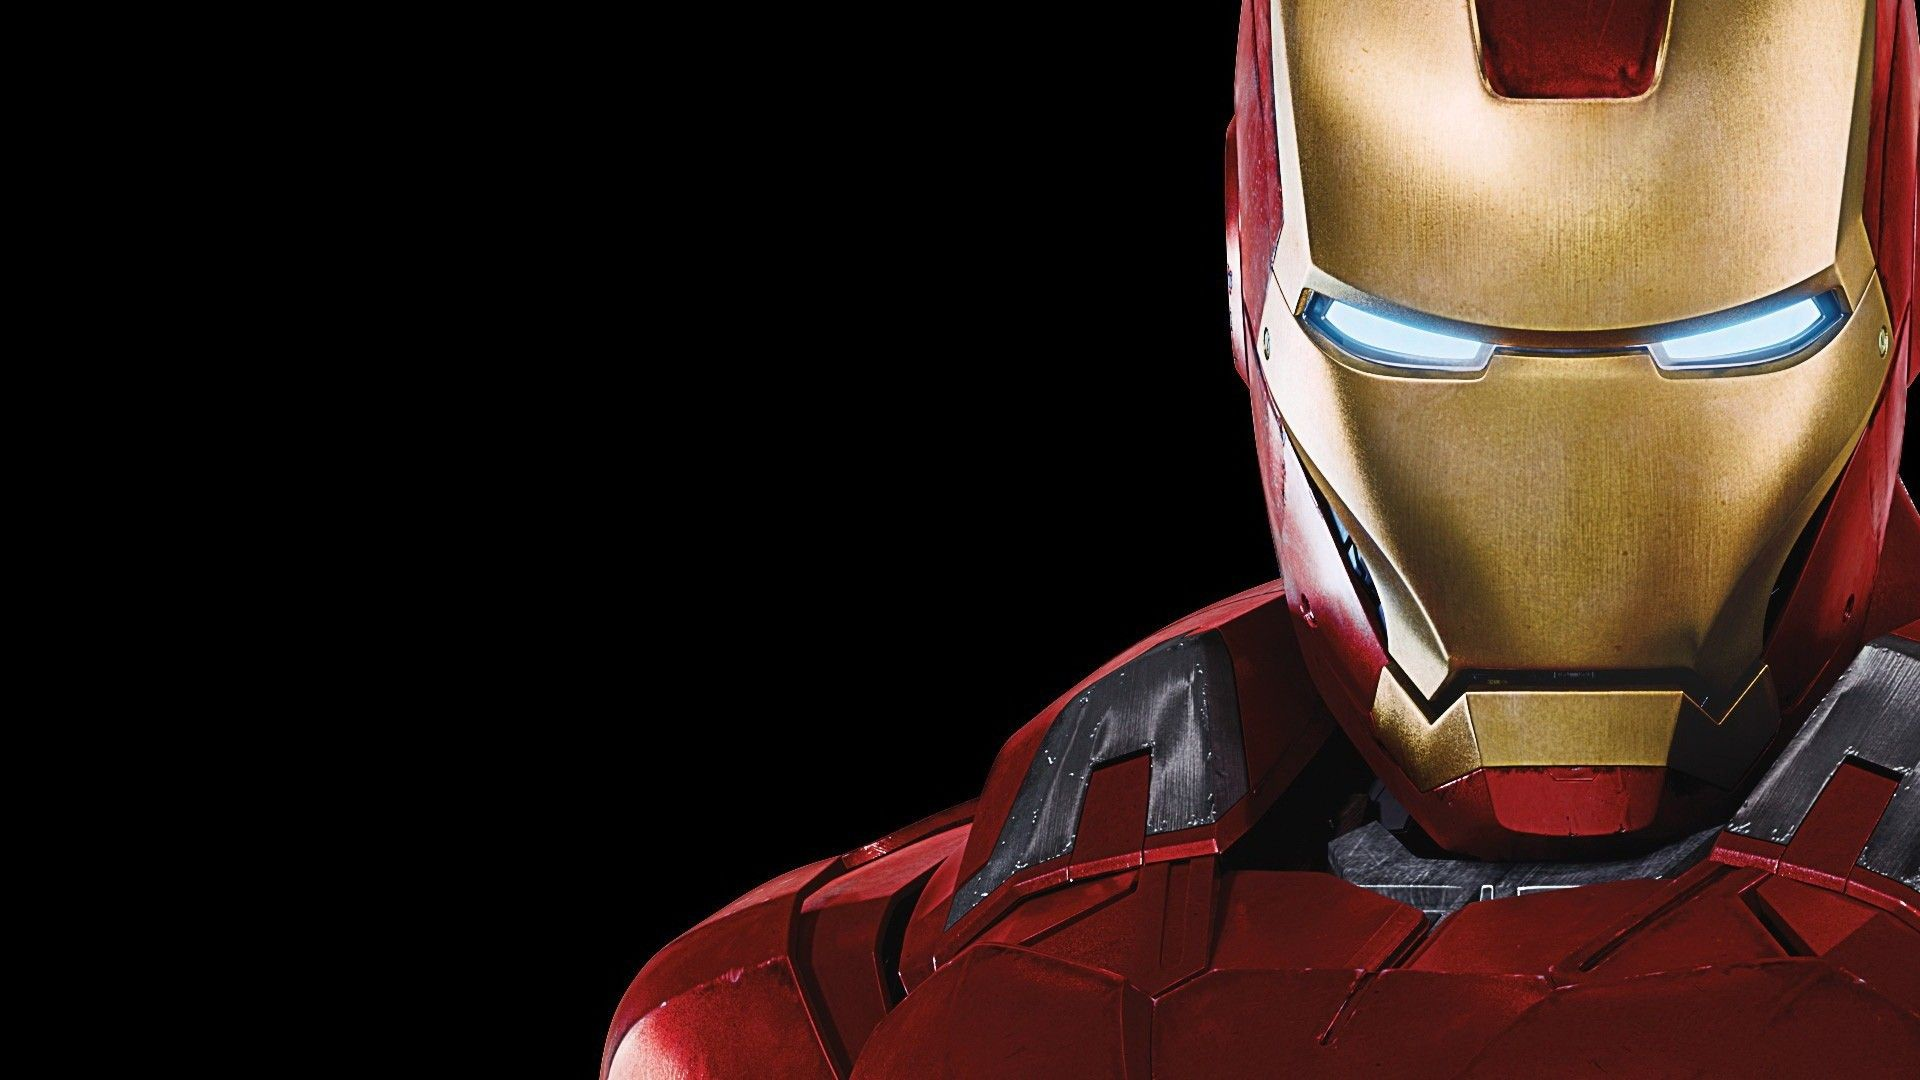 Hd Awesome Iron Man Wallpapers Full Size Hirewallpapers 1242 Iron Man Wallpaper Iron Man Hd Wallpaper Iron Man Avengers